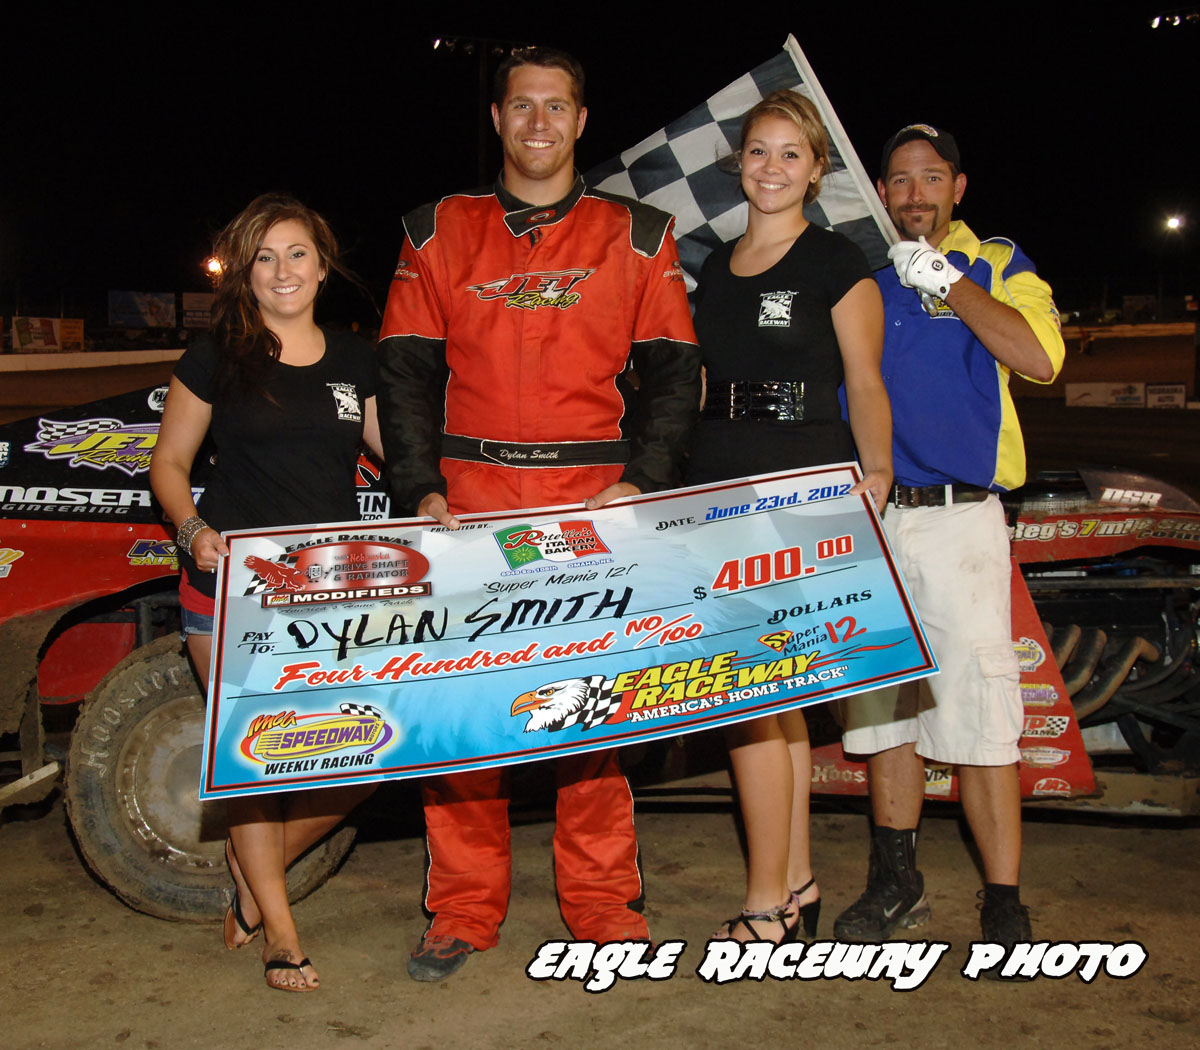 eagle-06-23-12-421-dylan-smith-with-jamie-kromberg-and-lindsey-flodman-and-flagman-billy-lloyd